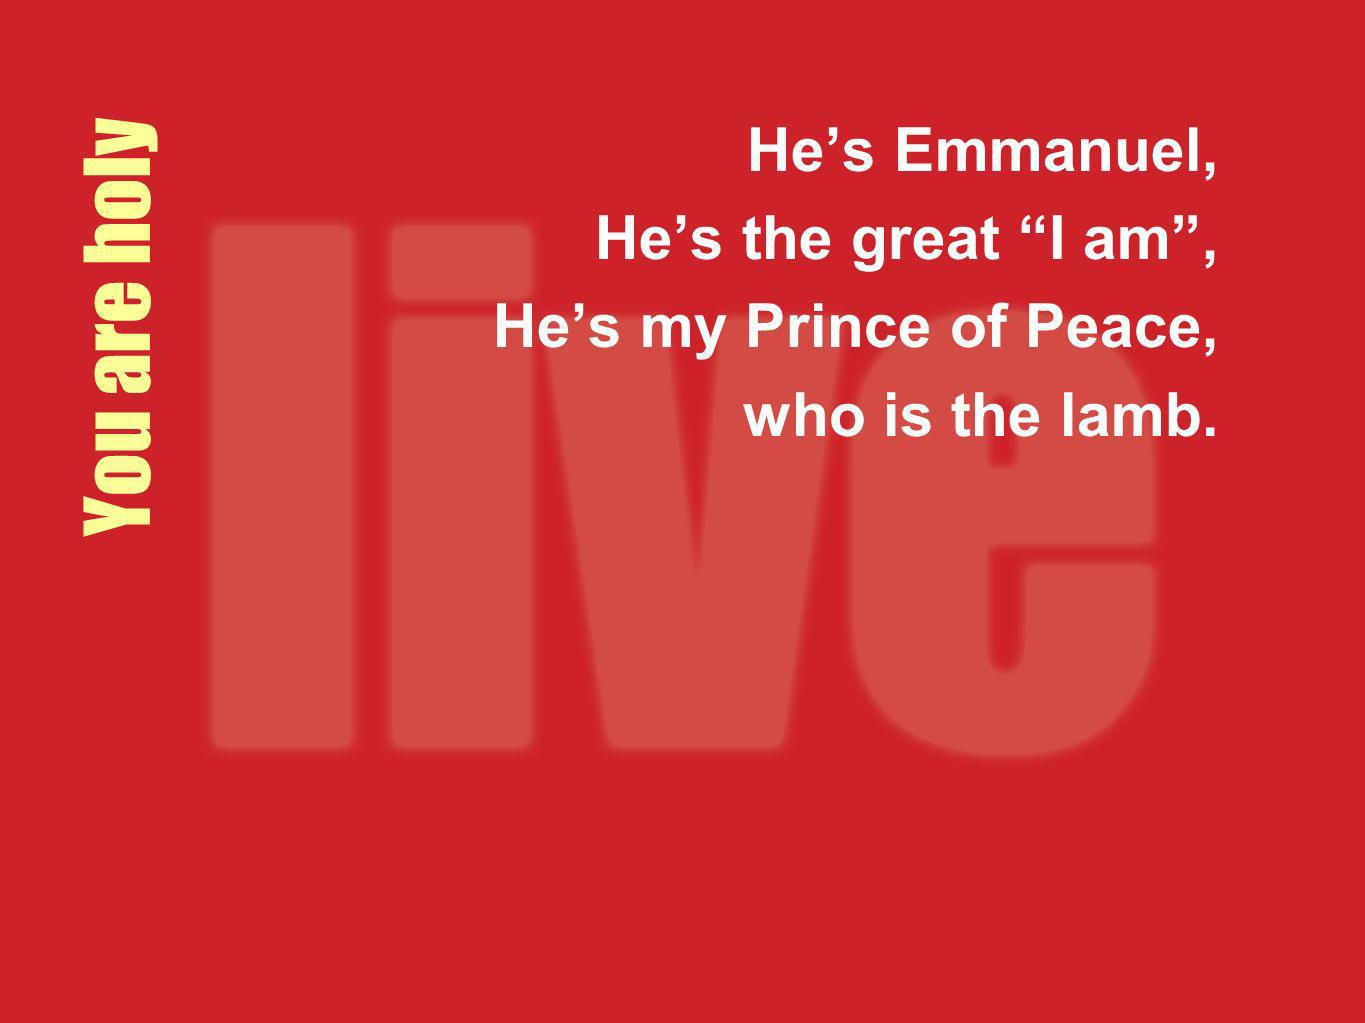 You are holy Hes Emmanuel, Hes the great I am, Hes my Prince of Peace, who is the lamb.